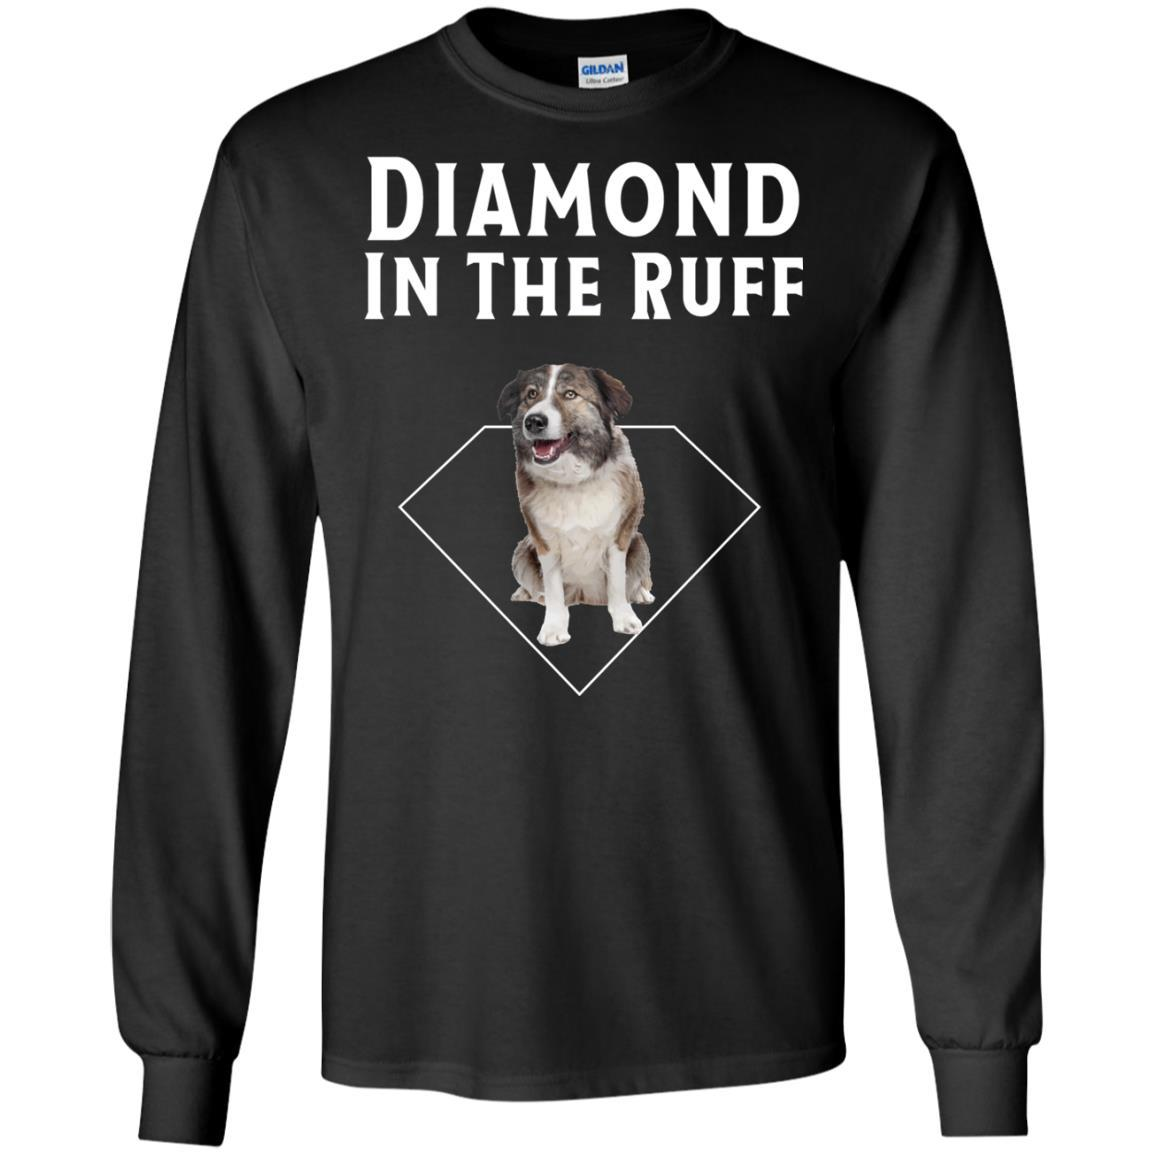 Aidi Diamond in The Ruff Dog Lover T-Shirt Long Sleeve 240